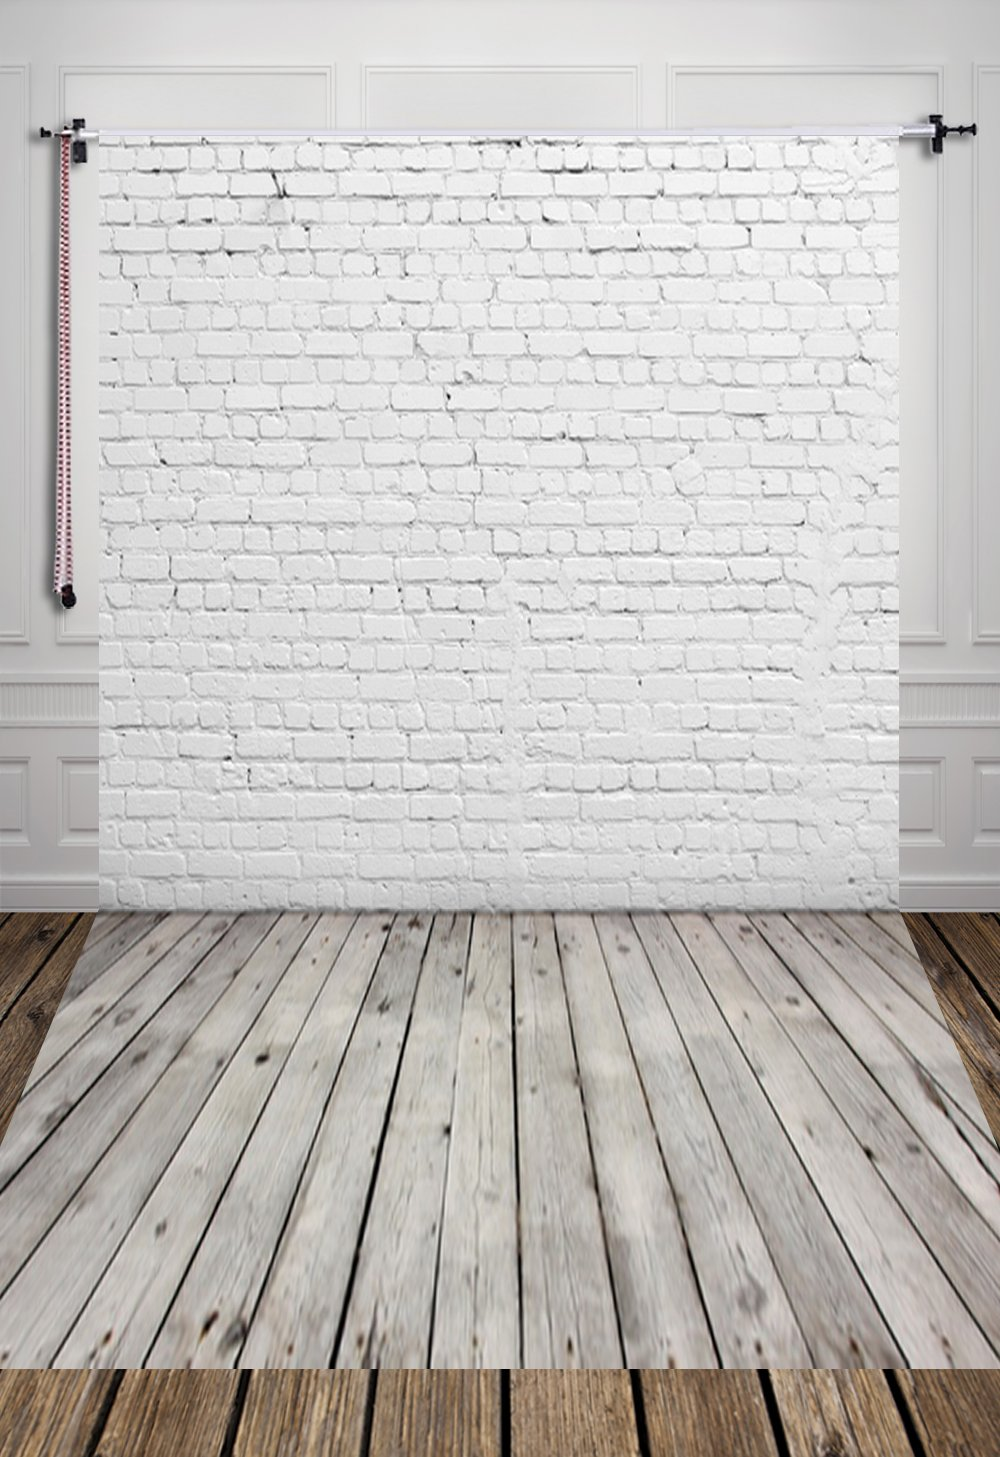 HUAYI 5X7ft White Brick Wall With Gray Wooden Floor Photography Vinyl Backdrop D-2504 by HUAYI